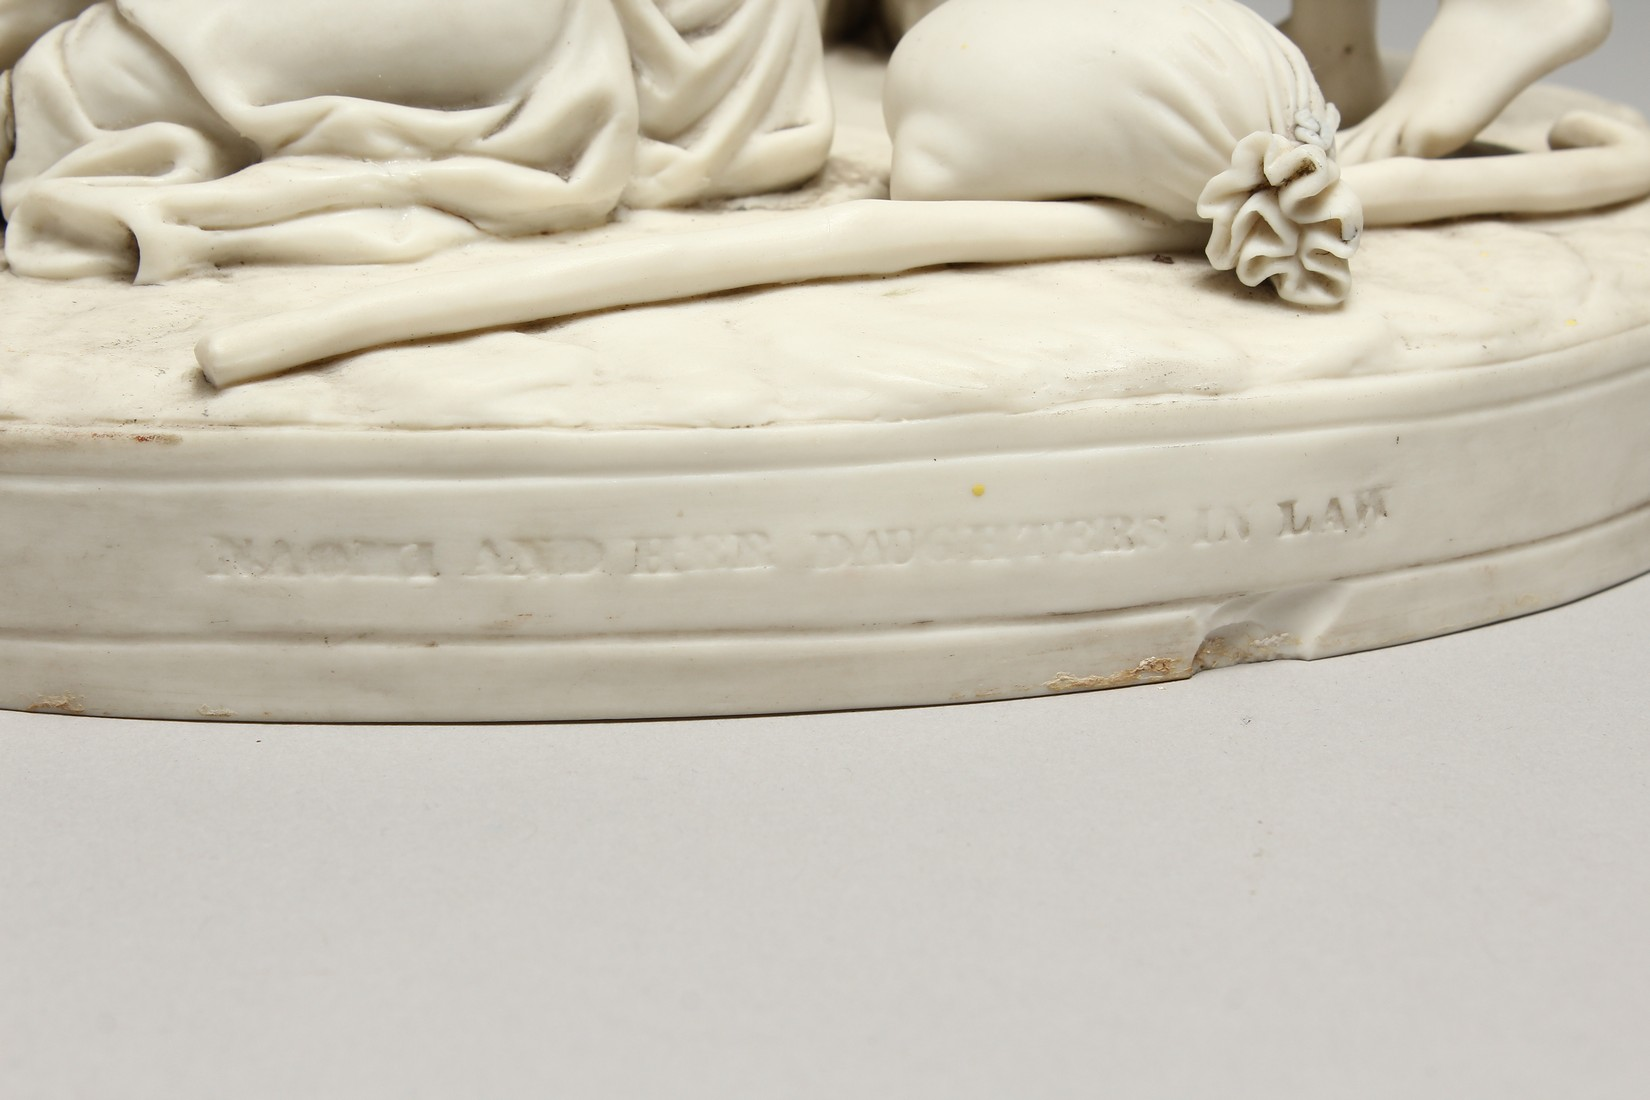 """A LATE 19TH CENTURY PARIAN WARE GROUP """"NAOMI AND HER DAUGHTER IN LAW"""". 13 ins high. - Image 4 of 8"""